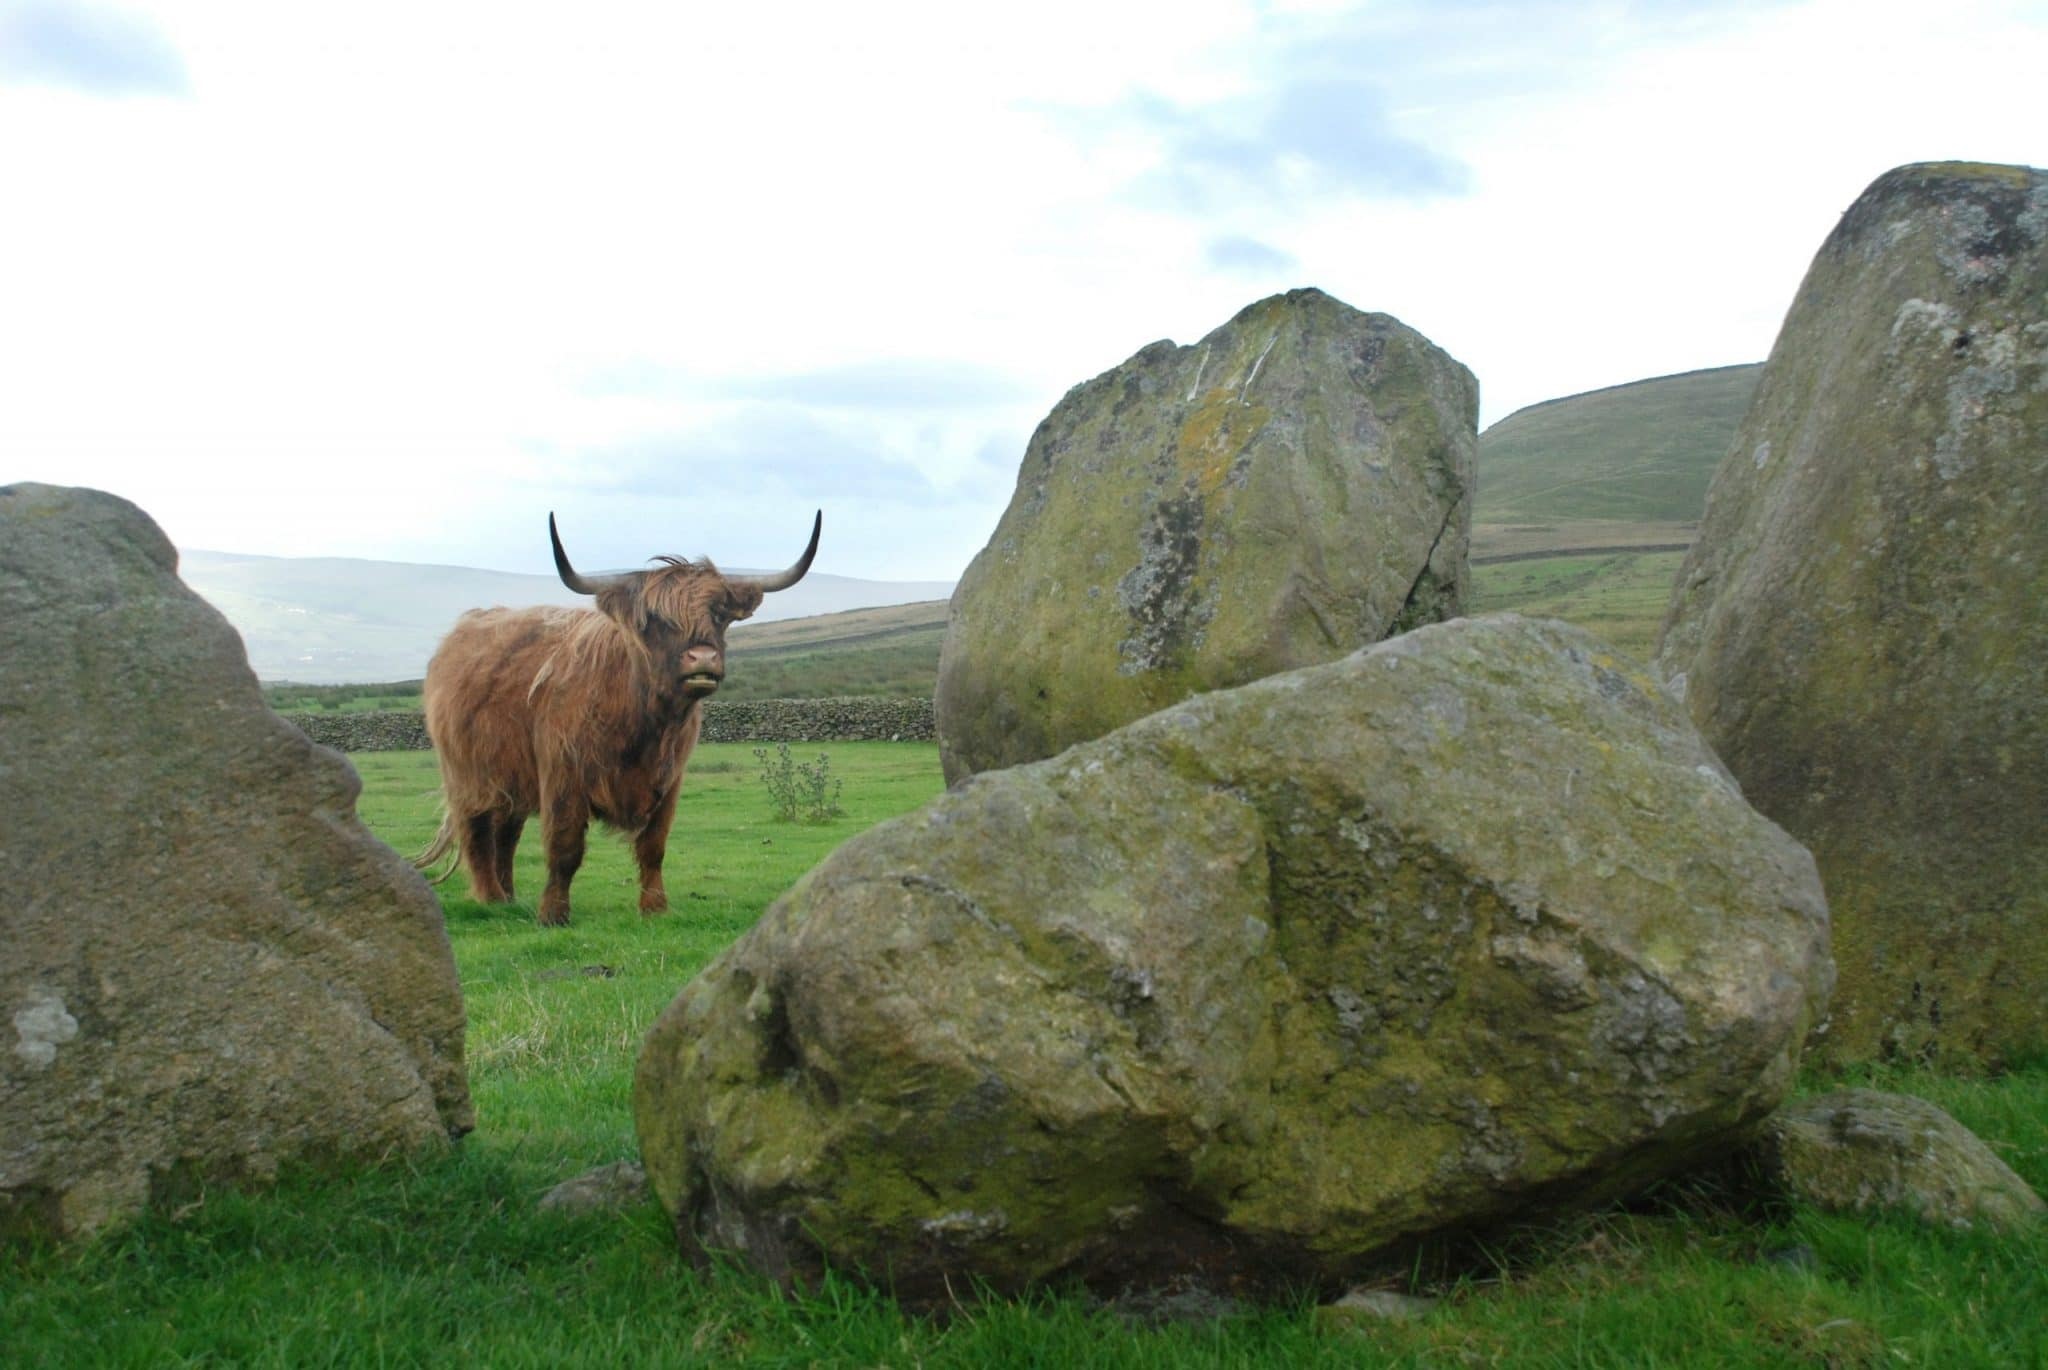 Highlander Scottish Cow At Swinside Stone Circle, Cumbria, Engla